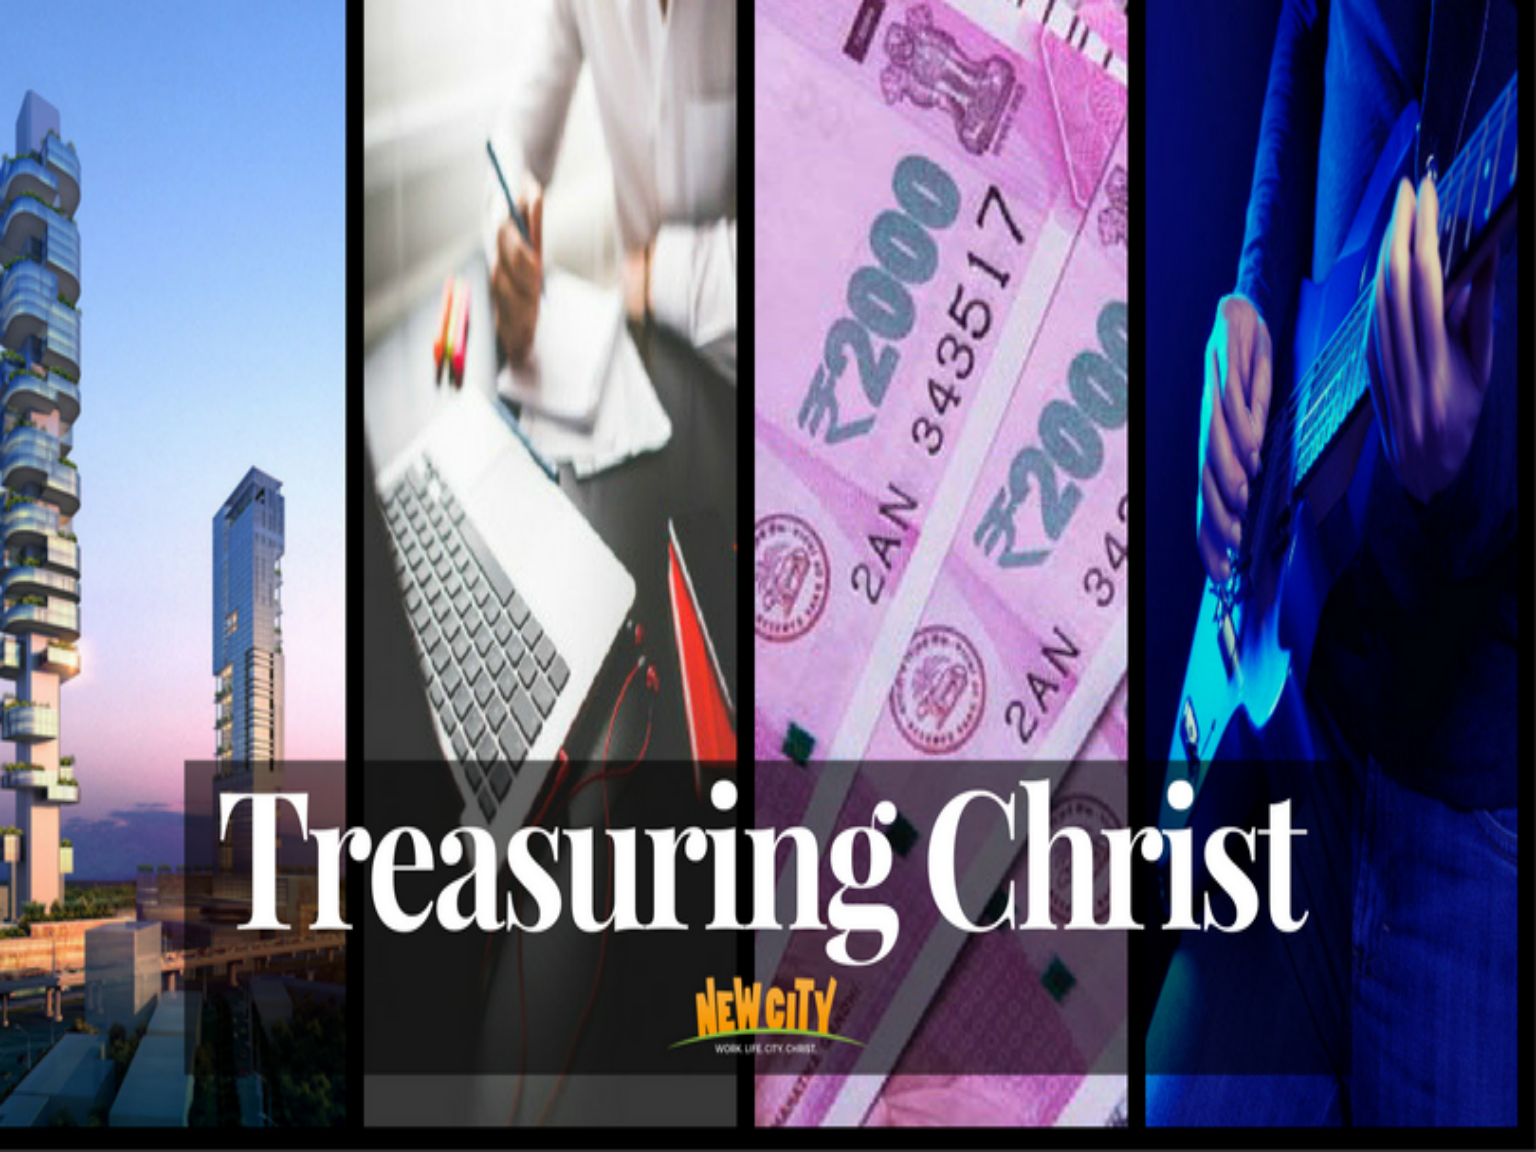 Treasuring Christ - Steven Kanga Image